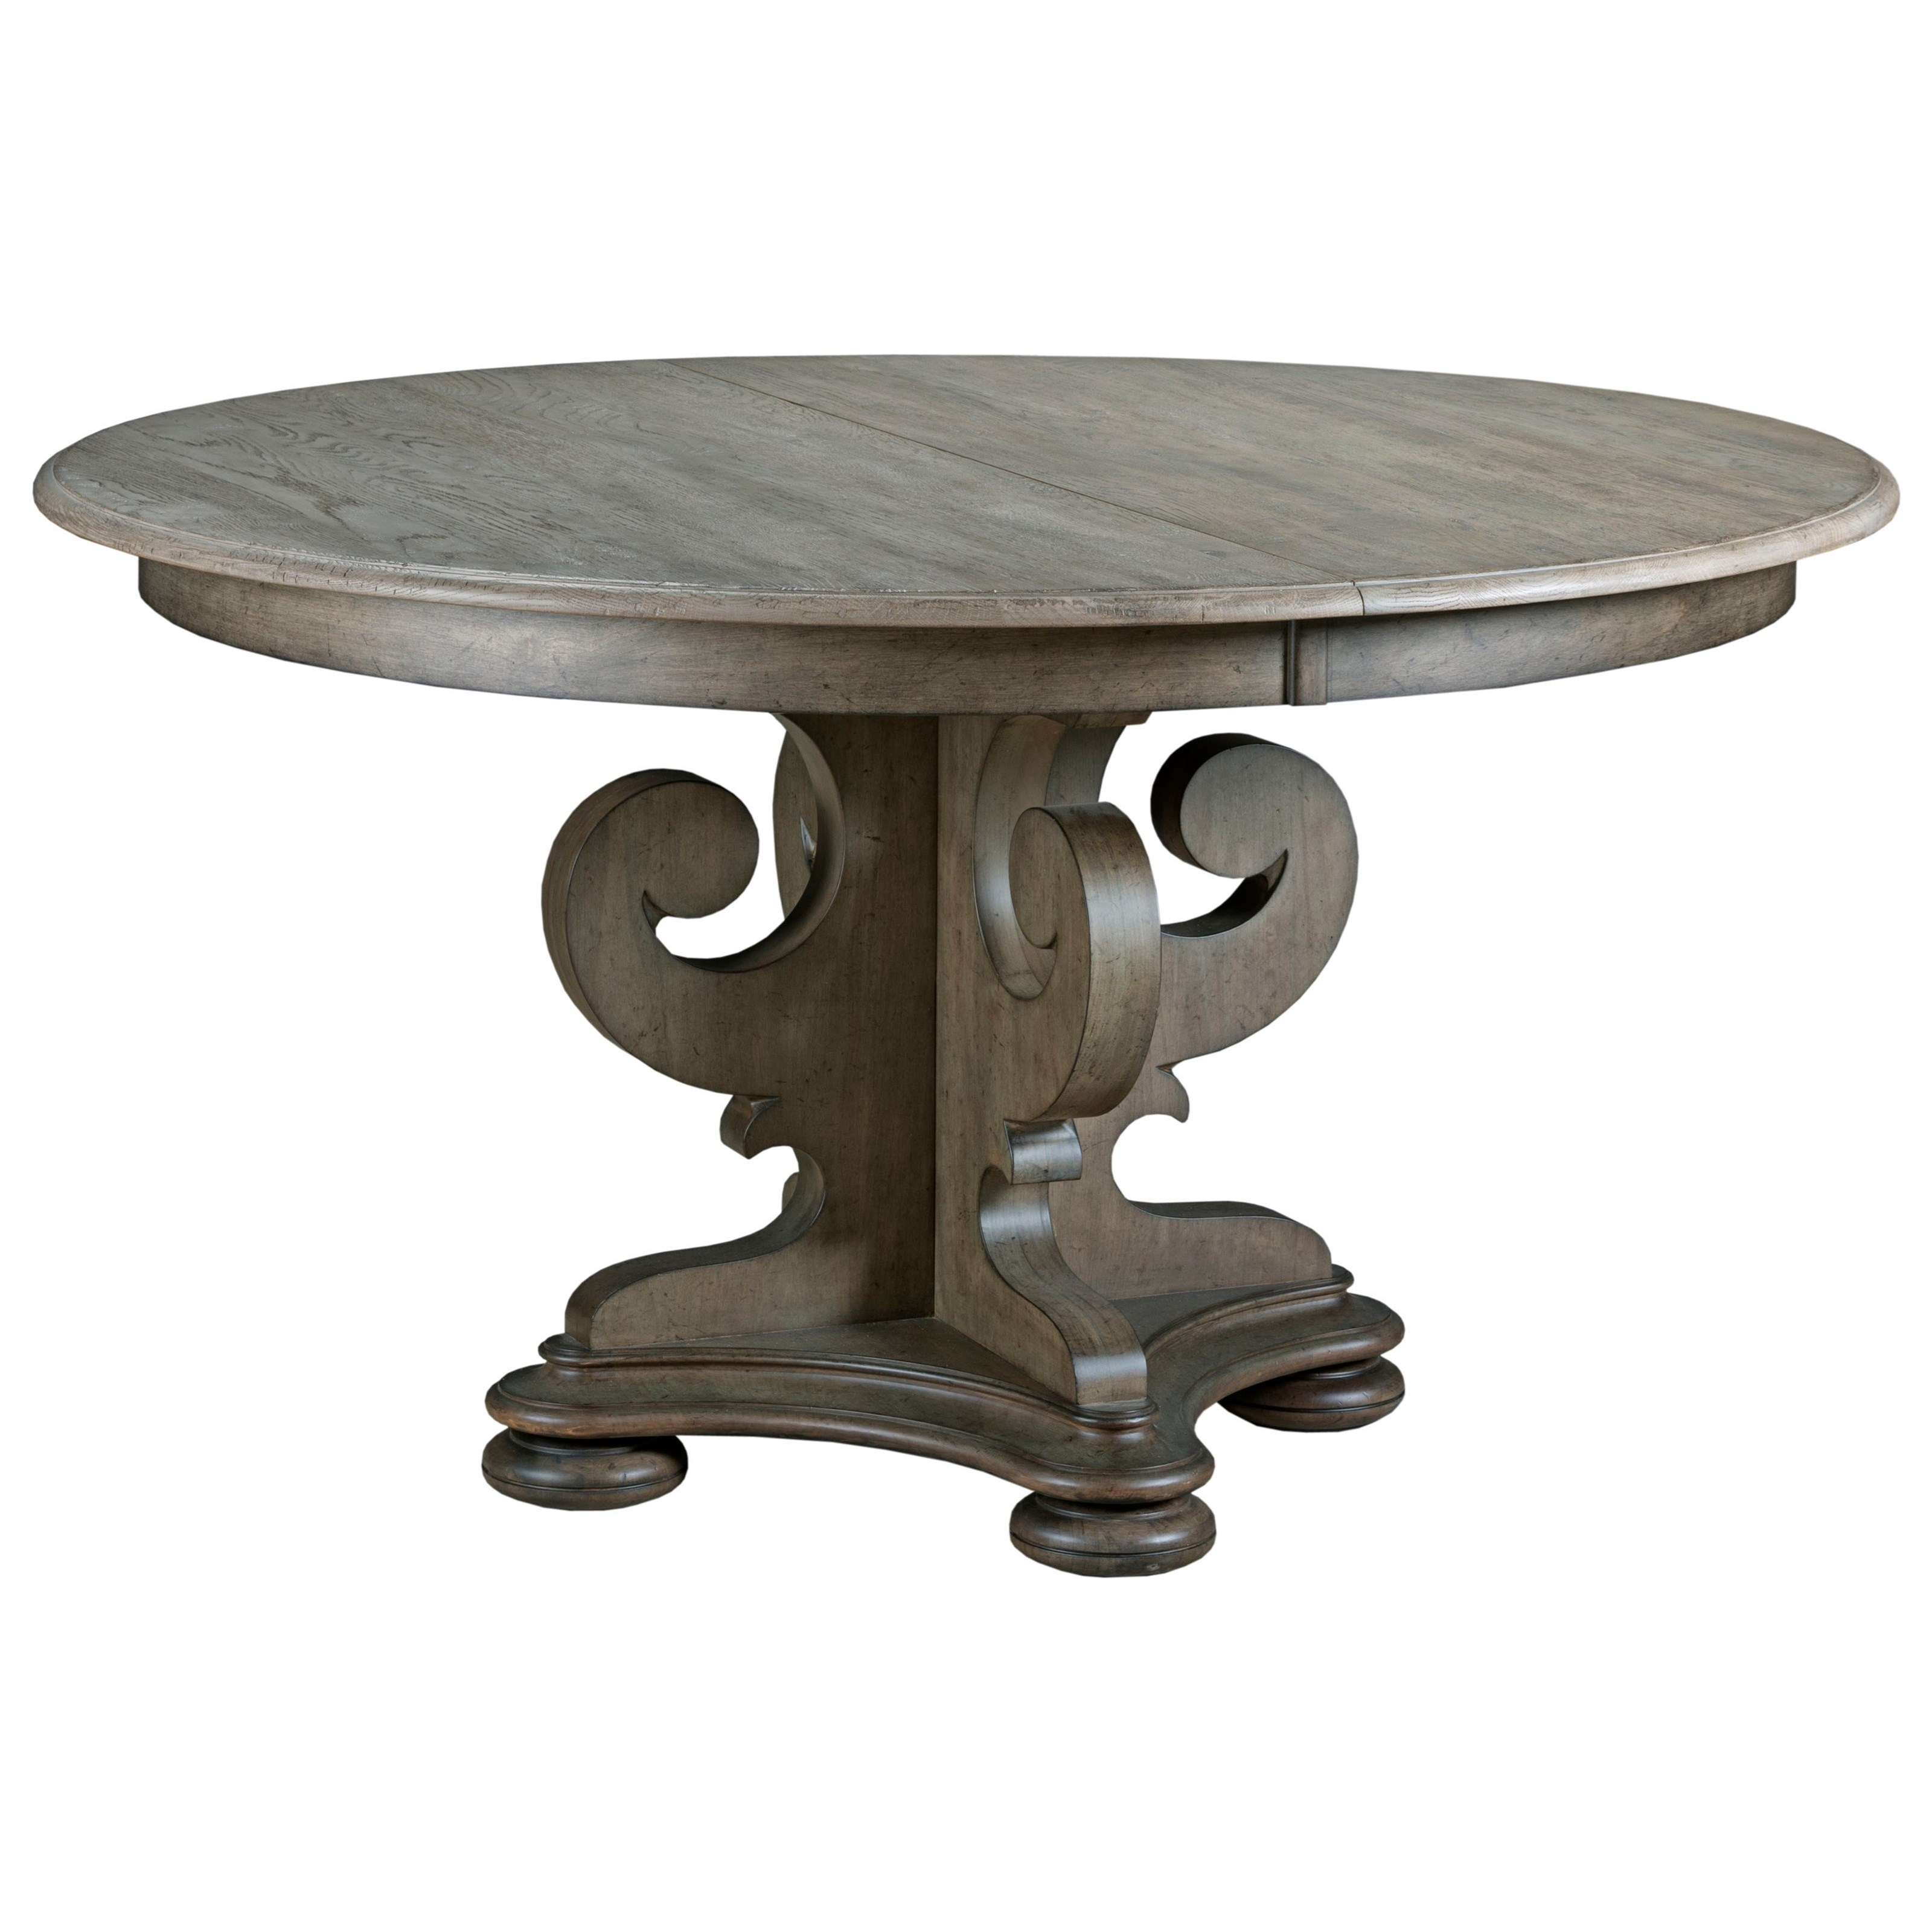 Round Pedestal Dining Table With Leaf grant scrolled pedestal round dining table with one extension leaf